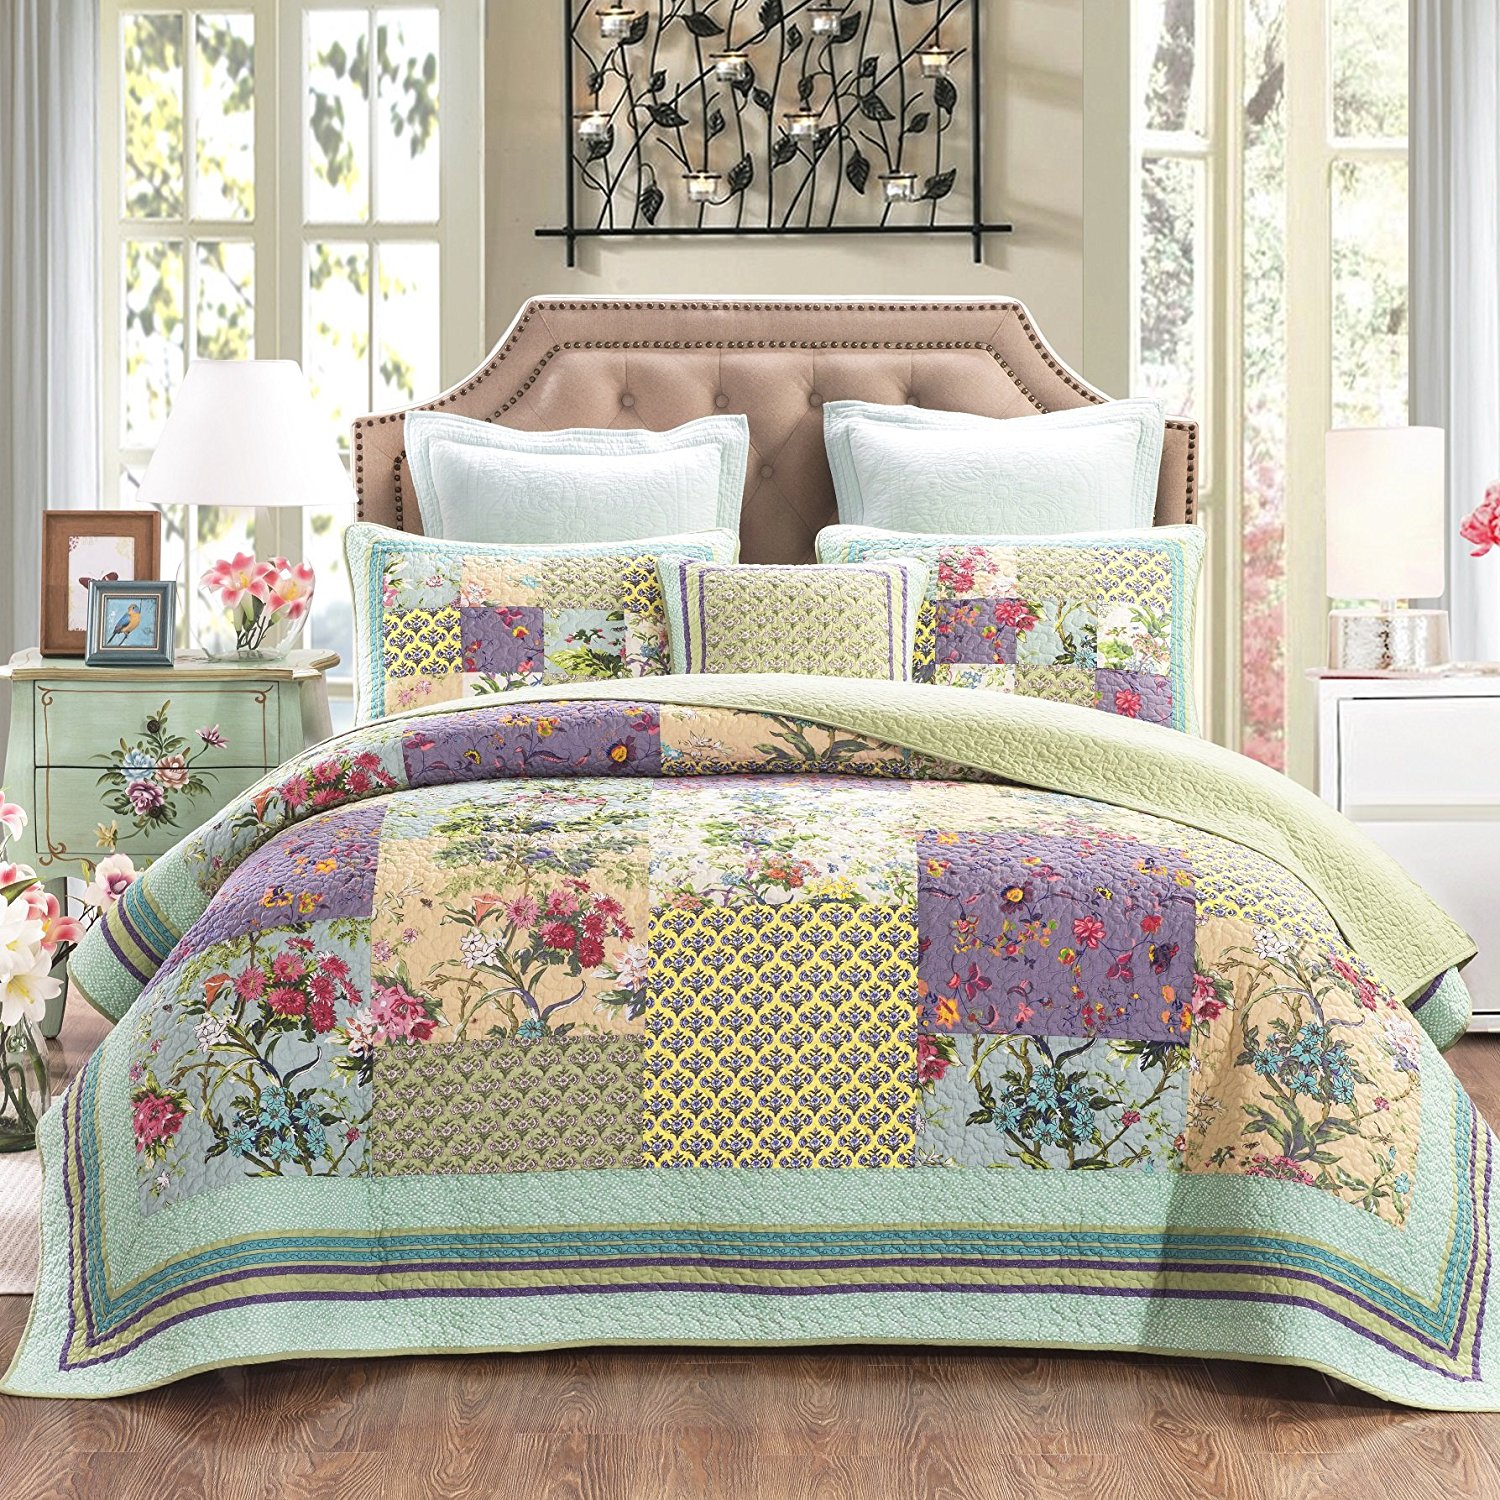 Image of: Modern Bedding Sets Theme